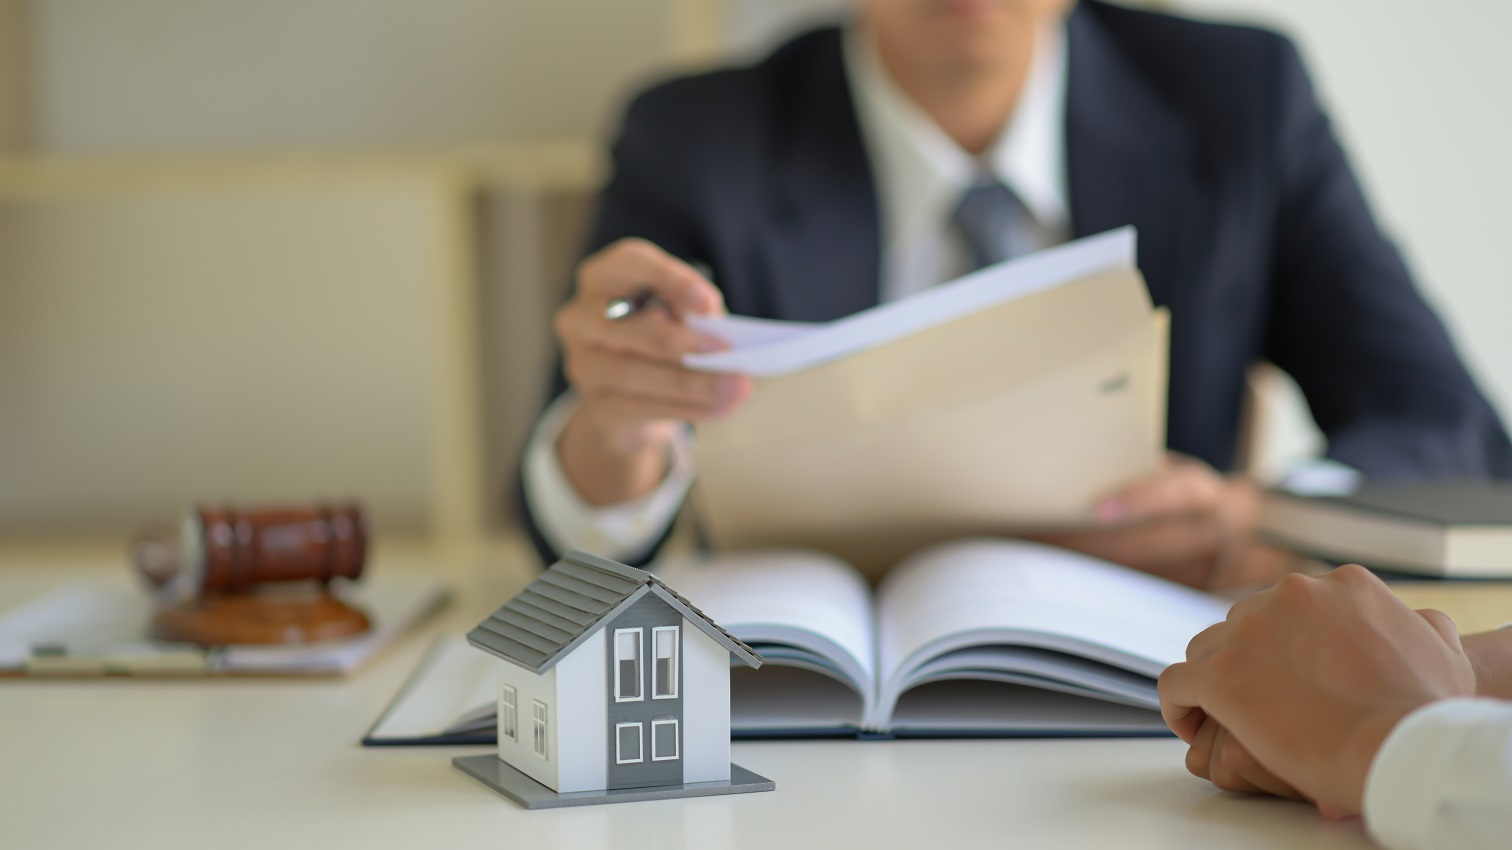 buying home va loan candidate